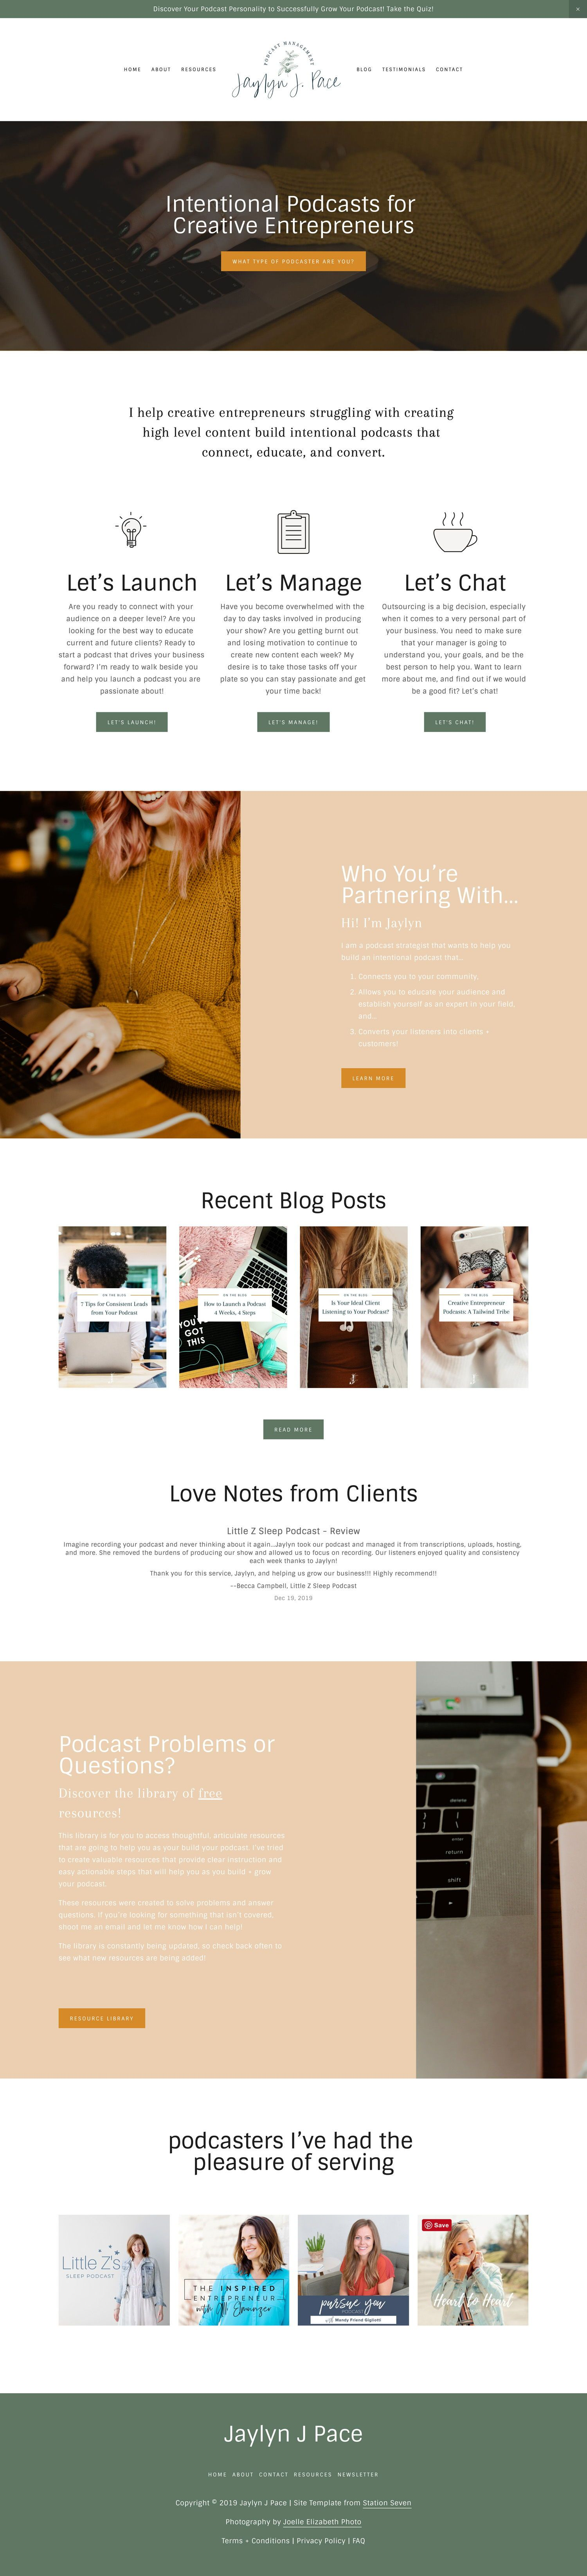 Flourish Squarespace Kit Station Seven Squarespace Templates Wordpress Themes And Free Resources For Creative Entrepreneurs In 2020 Squarespace Templates Creative Web Design News Website Design